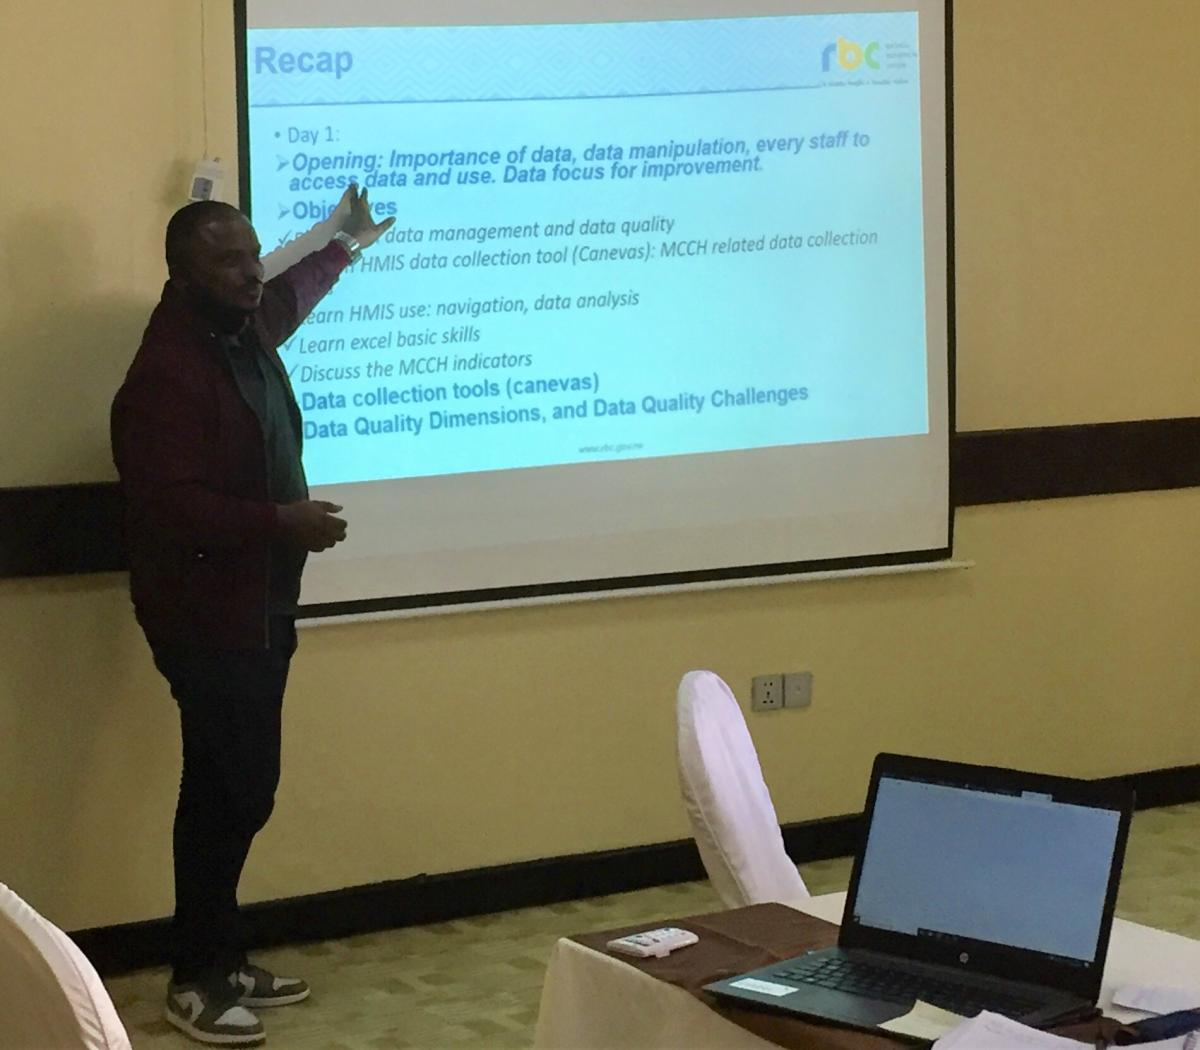 30 staff trained on Health Management Information System in Rwanda